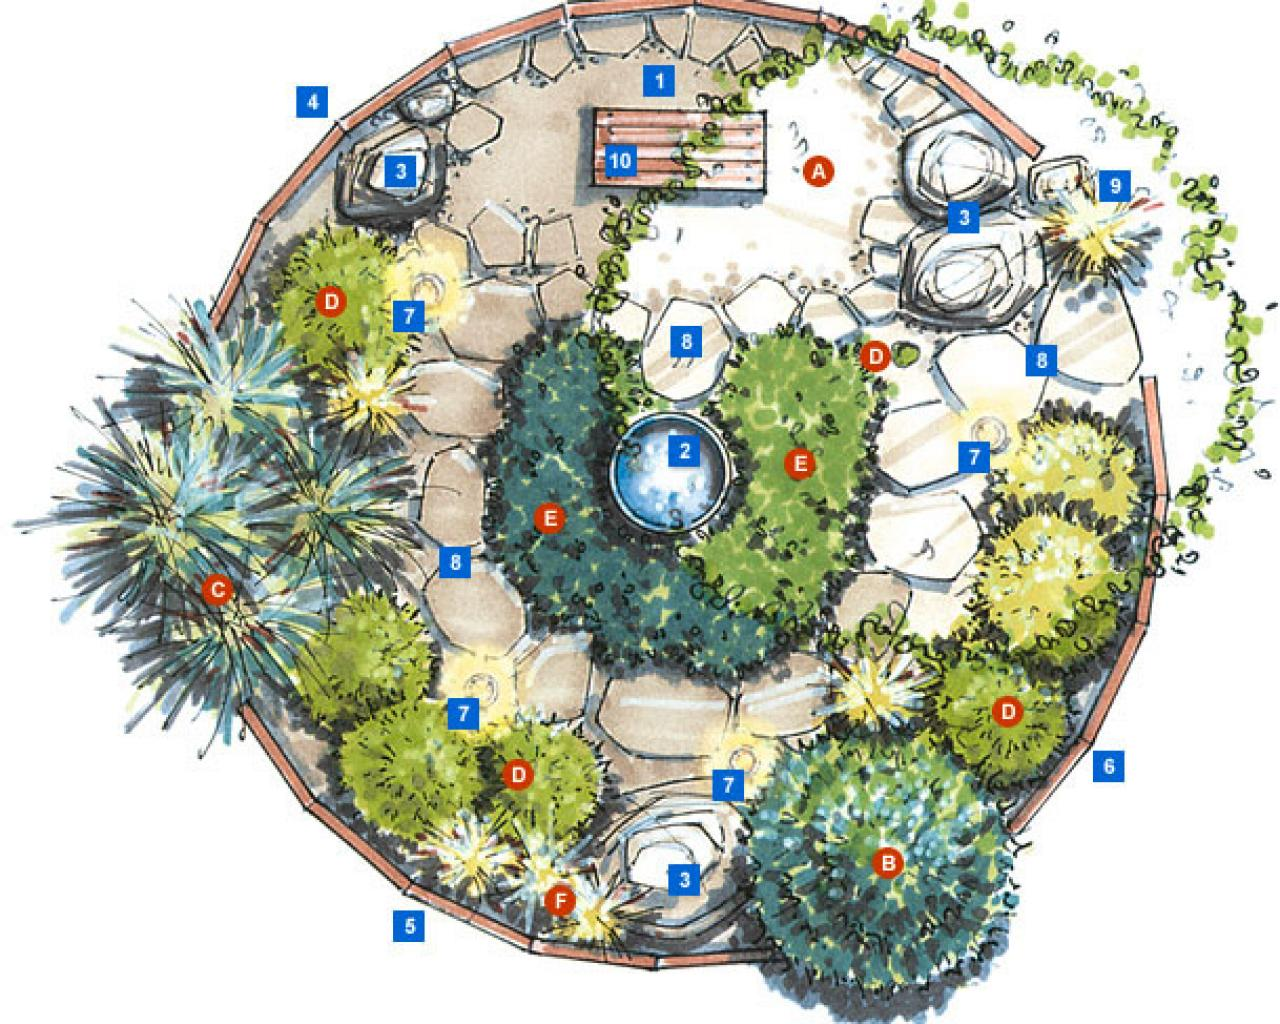 Pacific northwest garden plan hgtv for Garden landscape plan